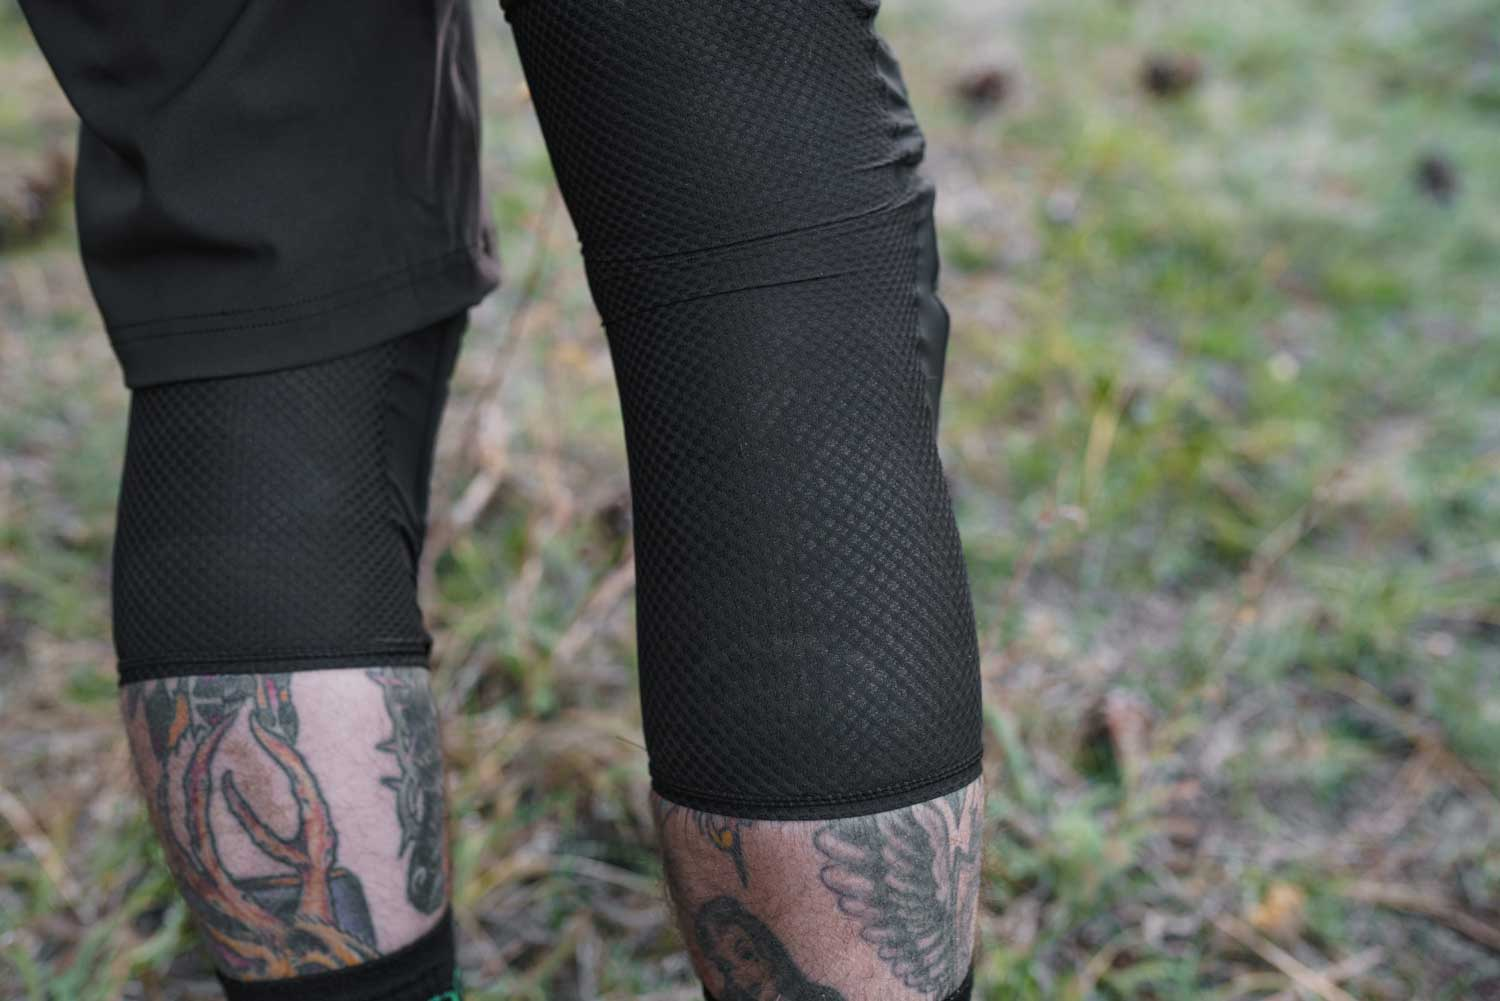 Fox Enduro Knee Guard